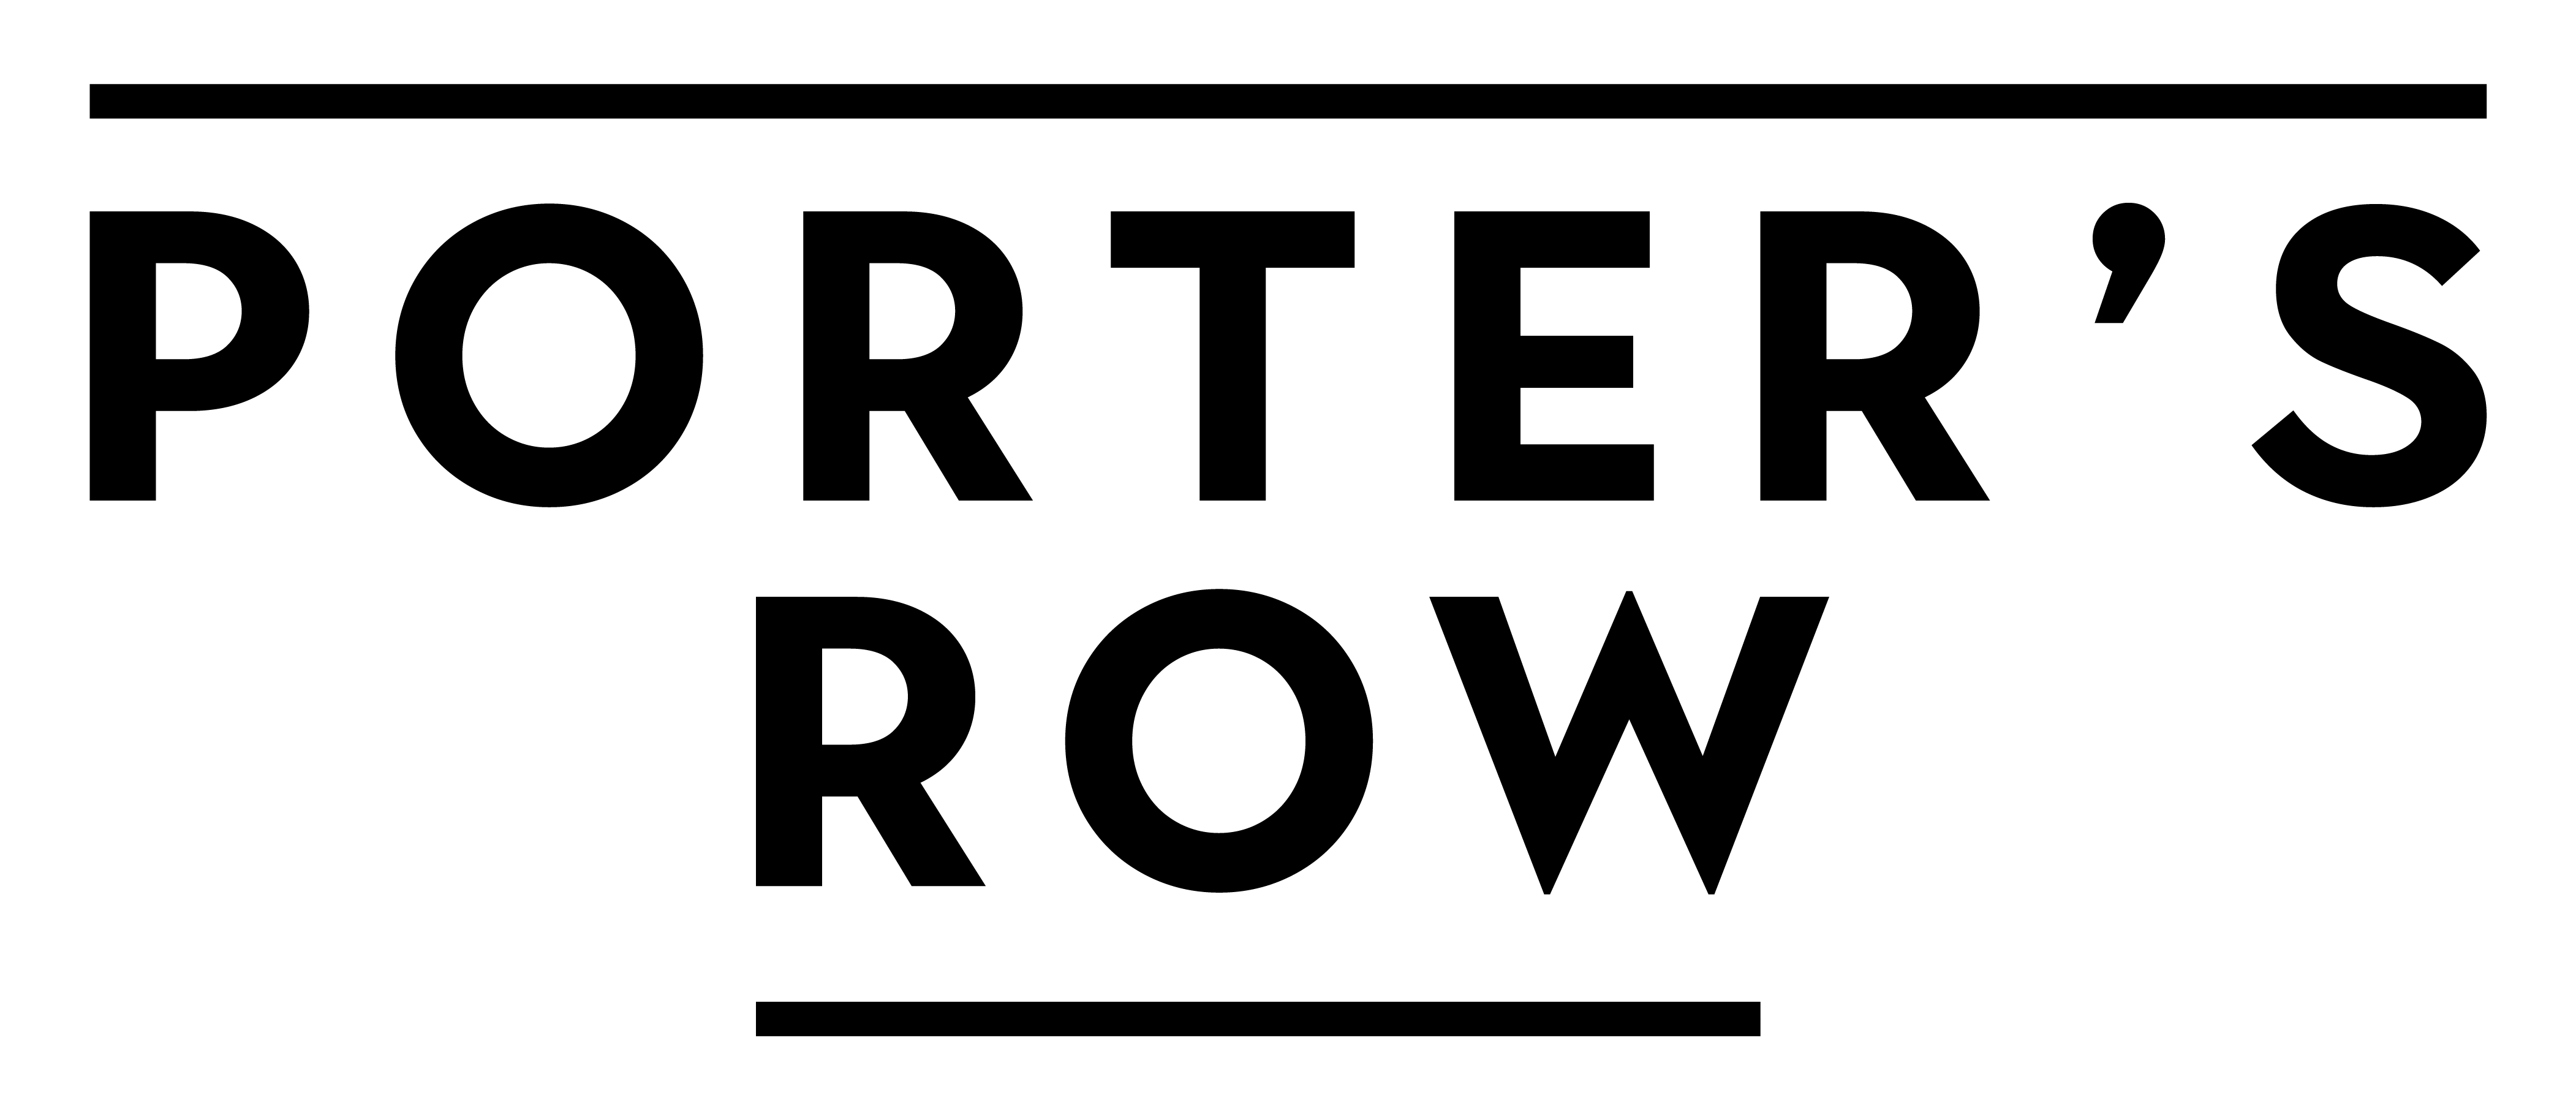 Porter's Row Marketing Logo in Charlotte North Carolina by Mattamy Homes